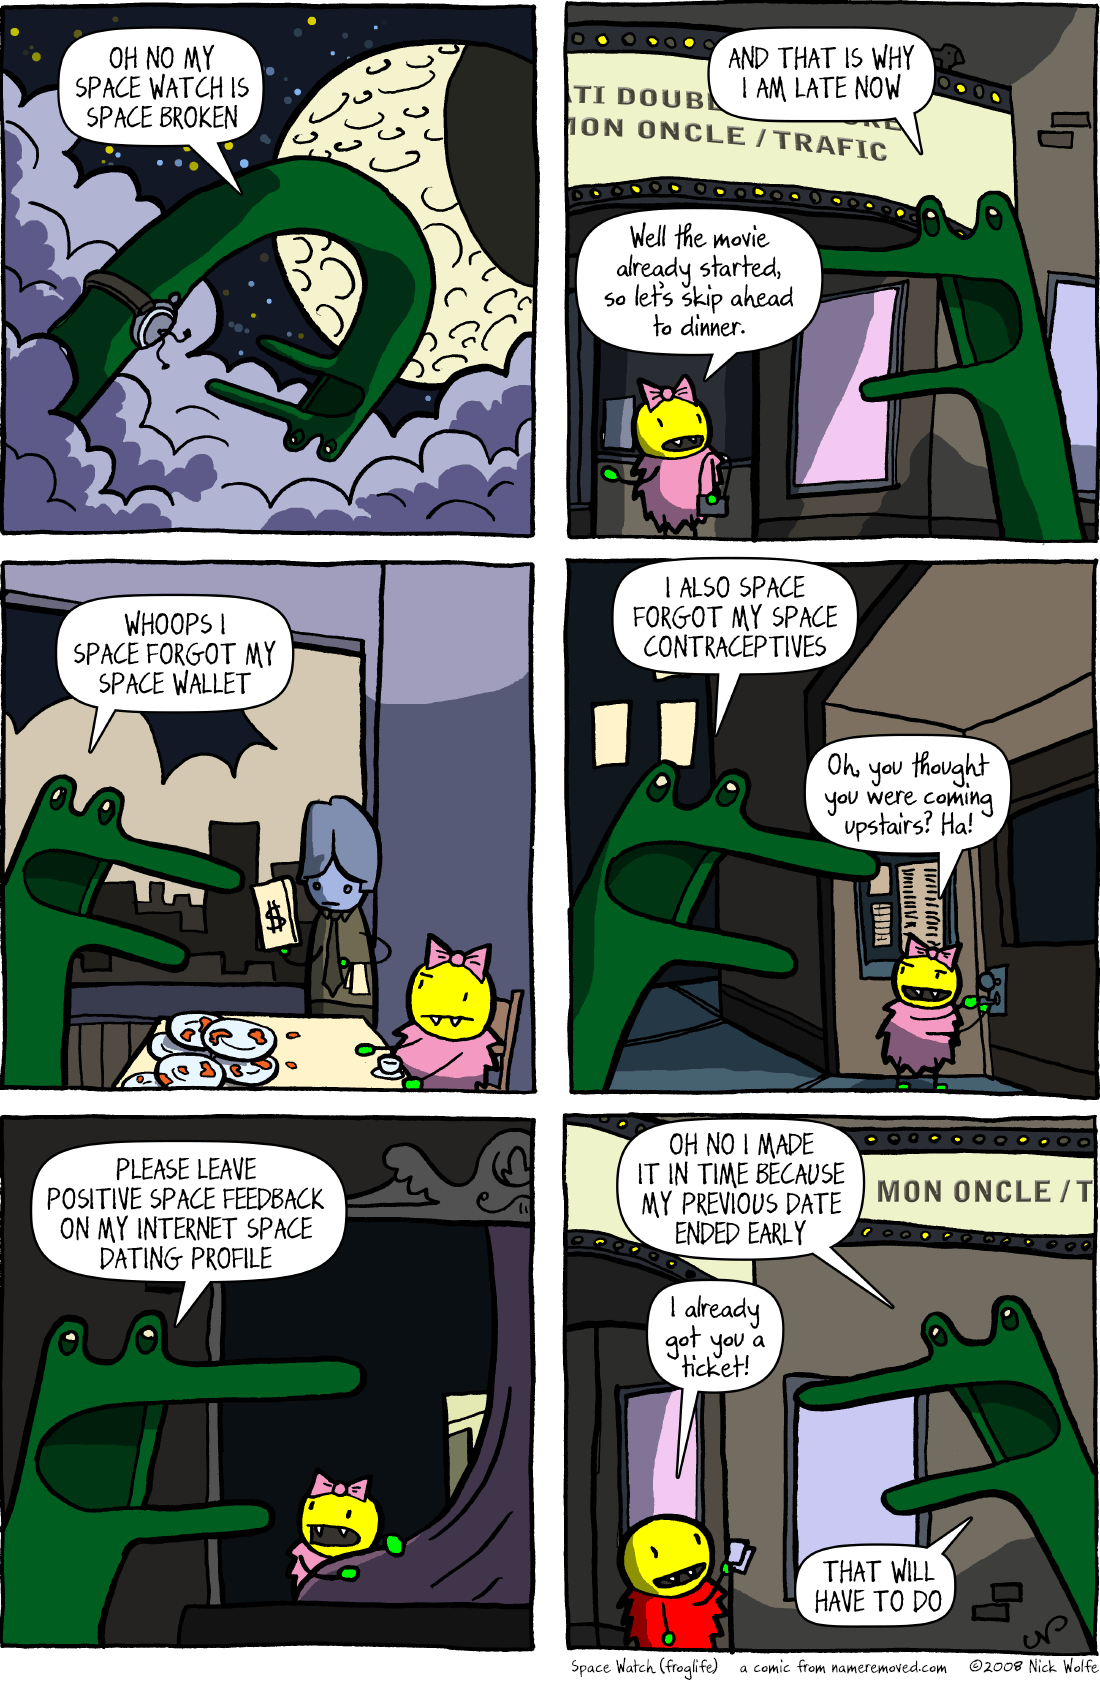 Space Watch (froglife)